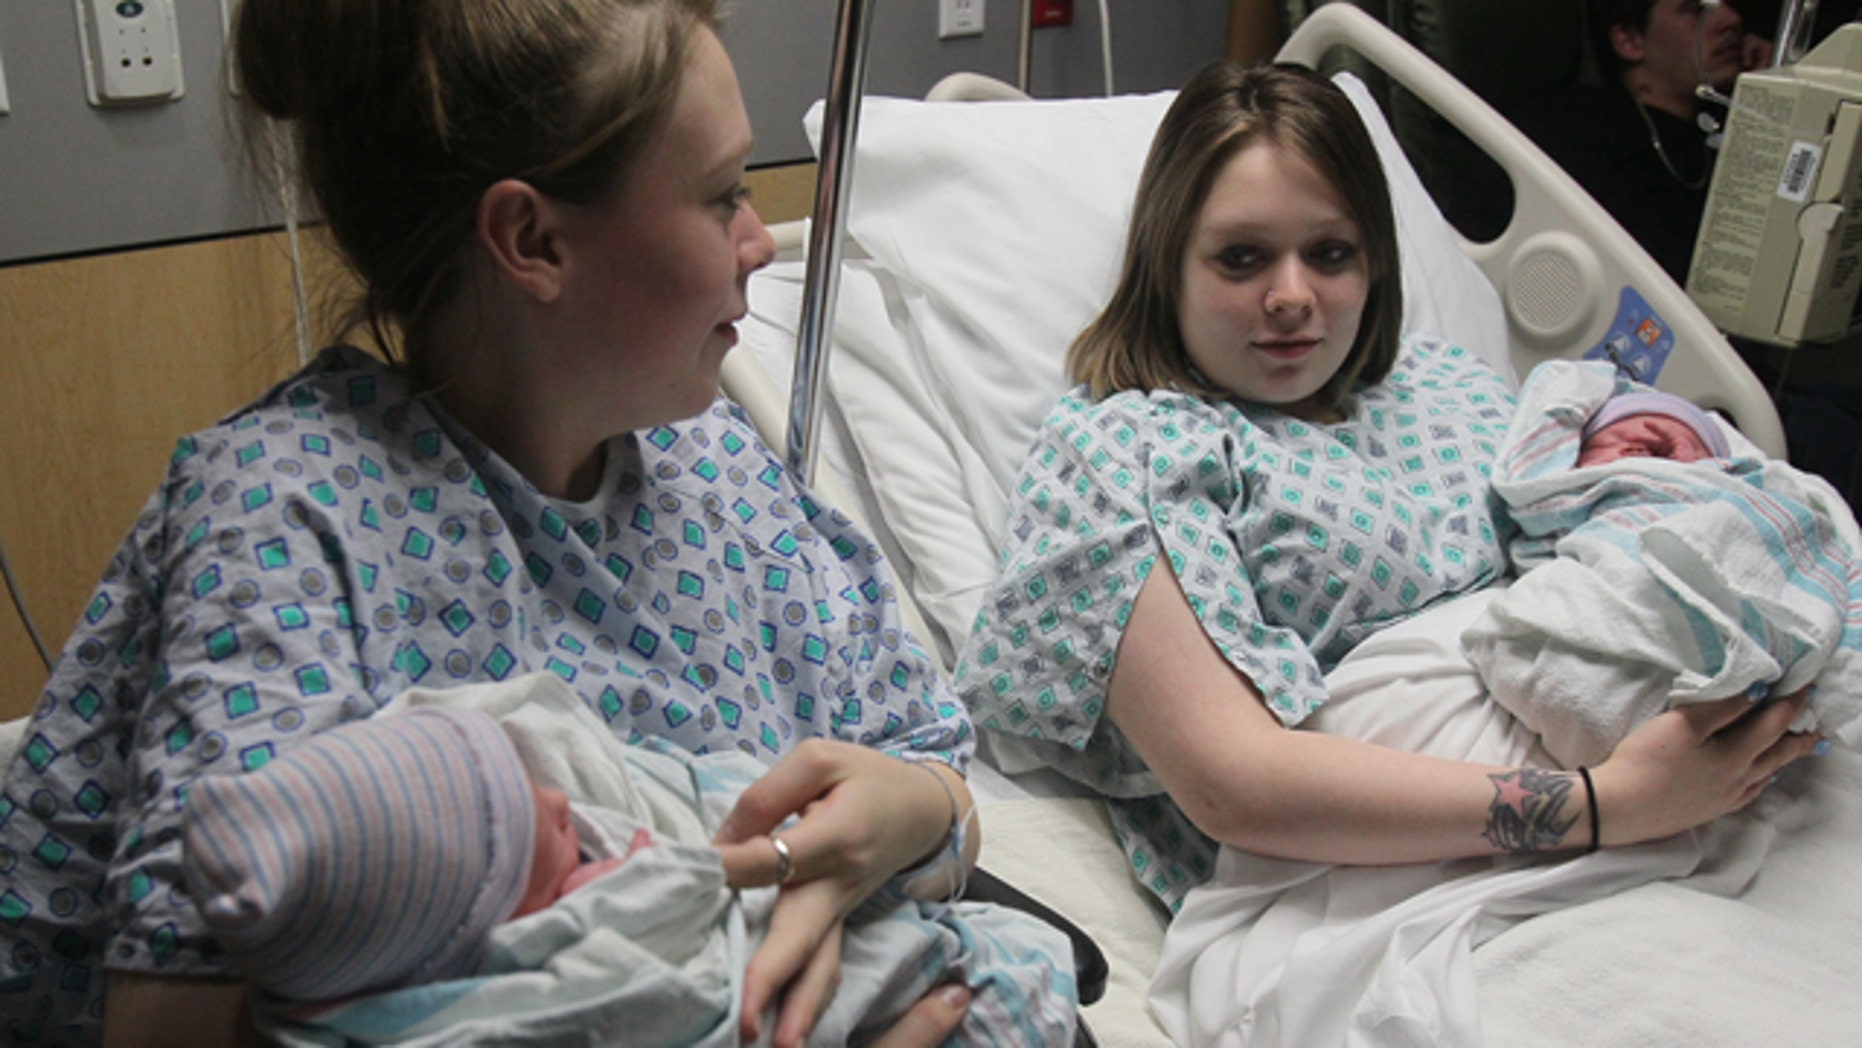 Dec. 31, 2012: Twin mothers Aimee, left, and Ashlee Nelson hold their newborn sons Donavyn Bratten, left, and Aiden Lee Alan Dilts at Summa Akron City Hospital.